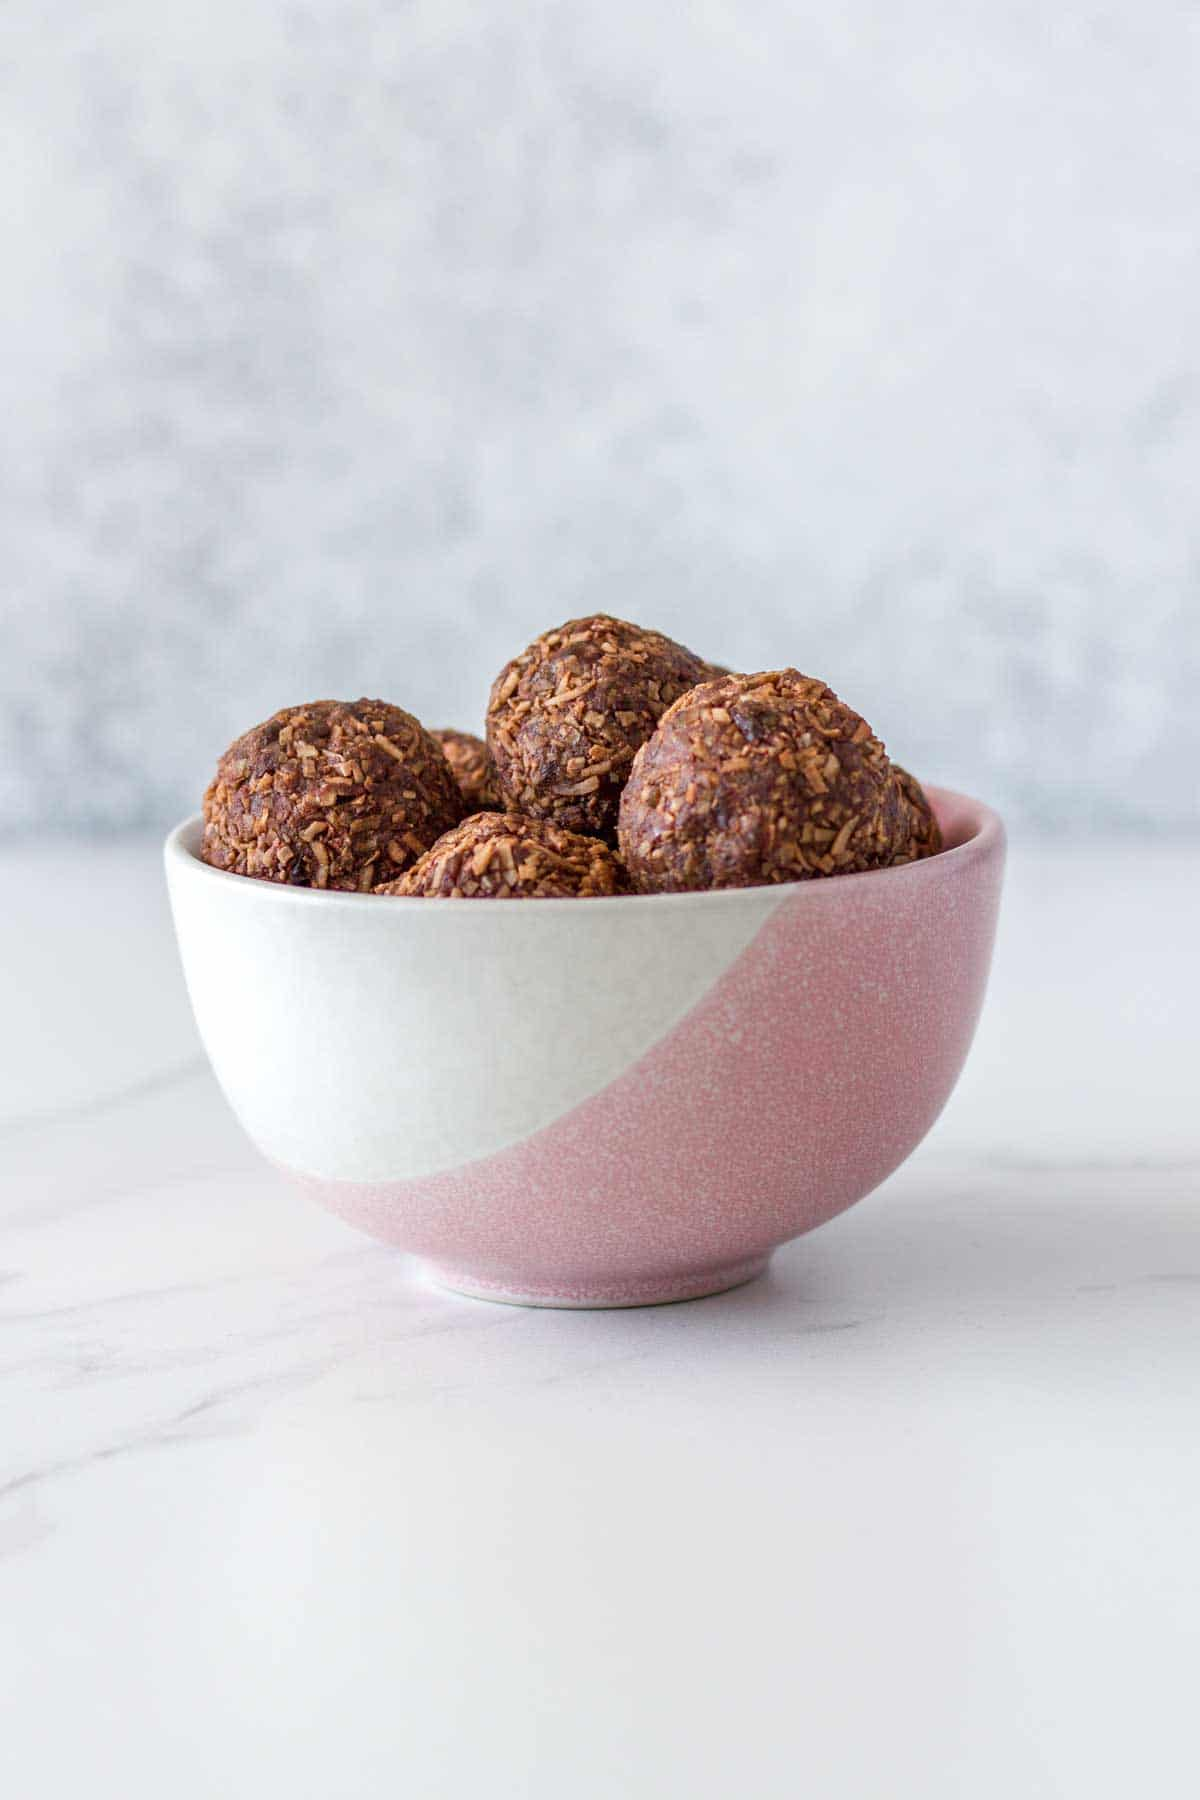 How the Peppermint Coconut Rough Bliss Balls look when ready to eat